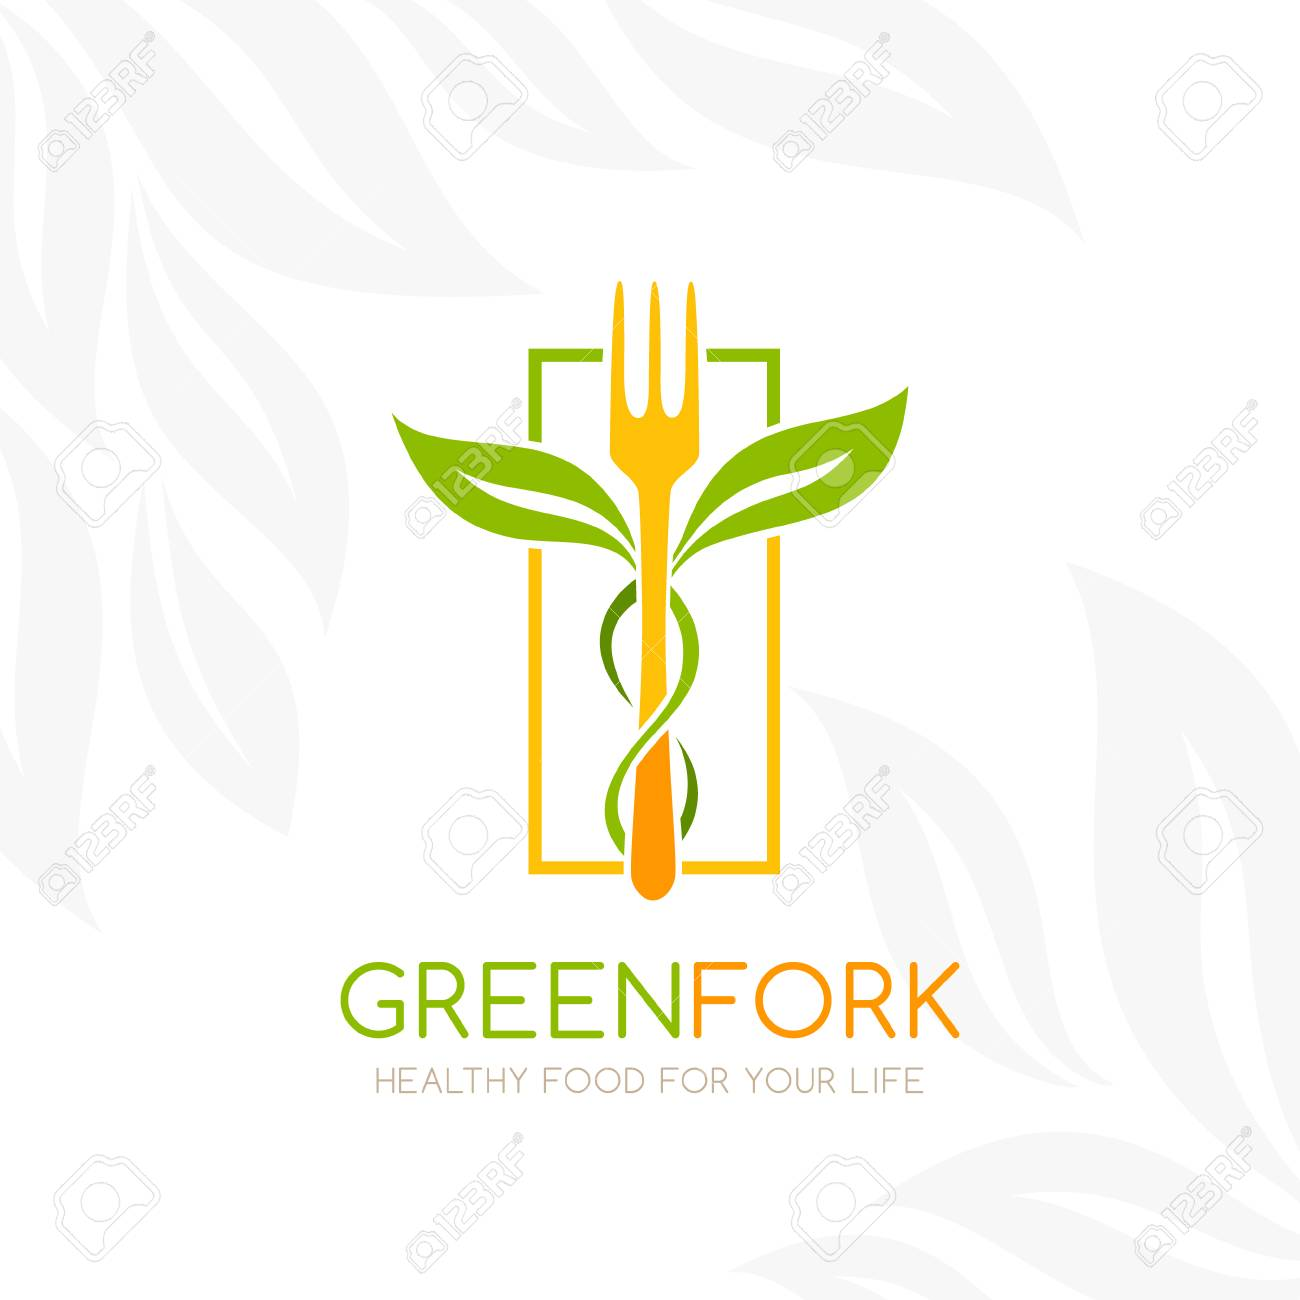 Healthy food logo. Fork with green leaves decoration. Vector icon template for vegan restaurant, diet menu, natural products, family farm. Light background - 69476964